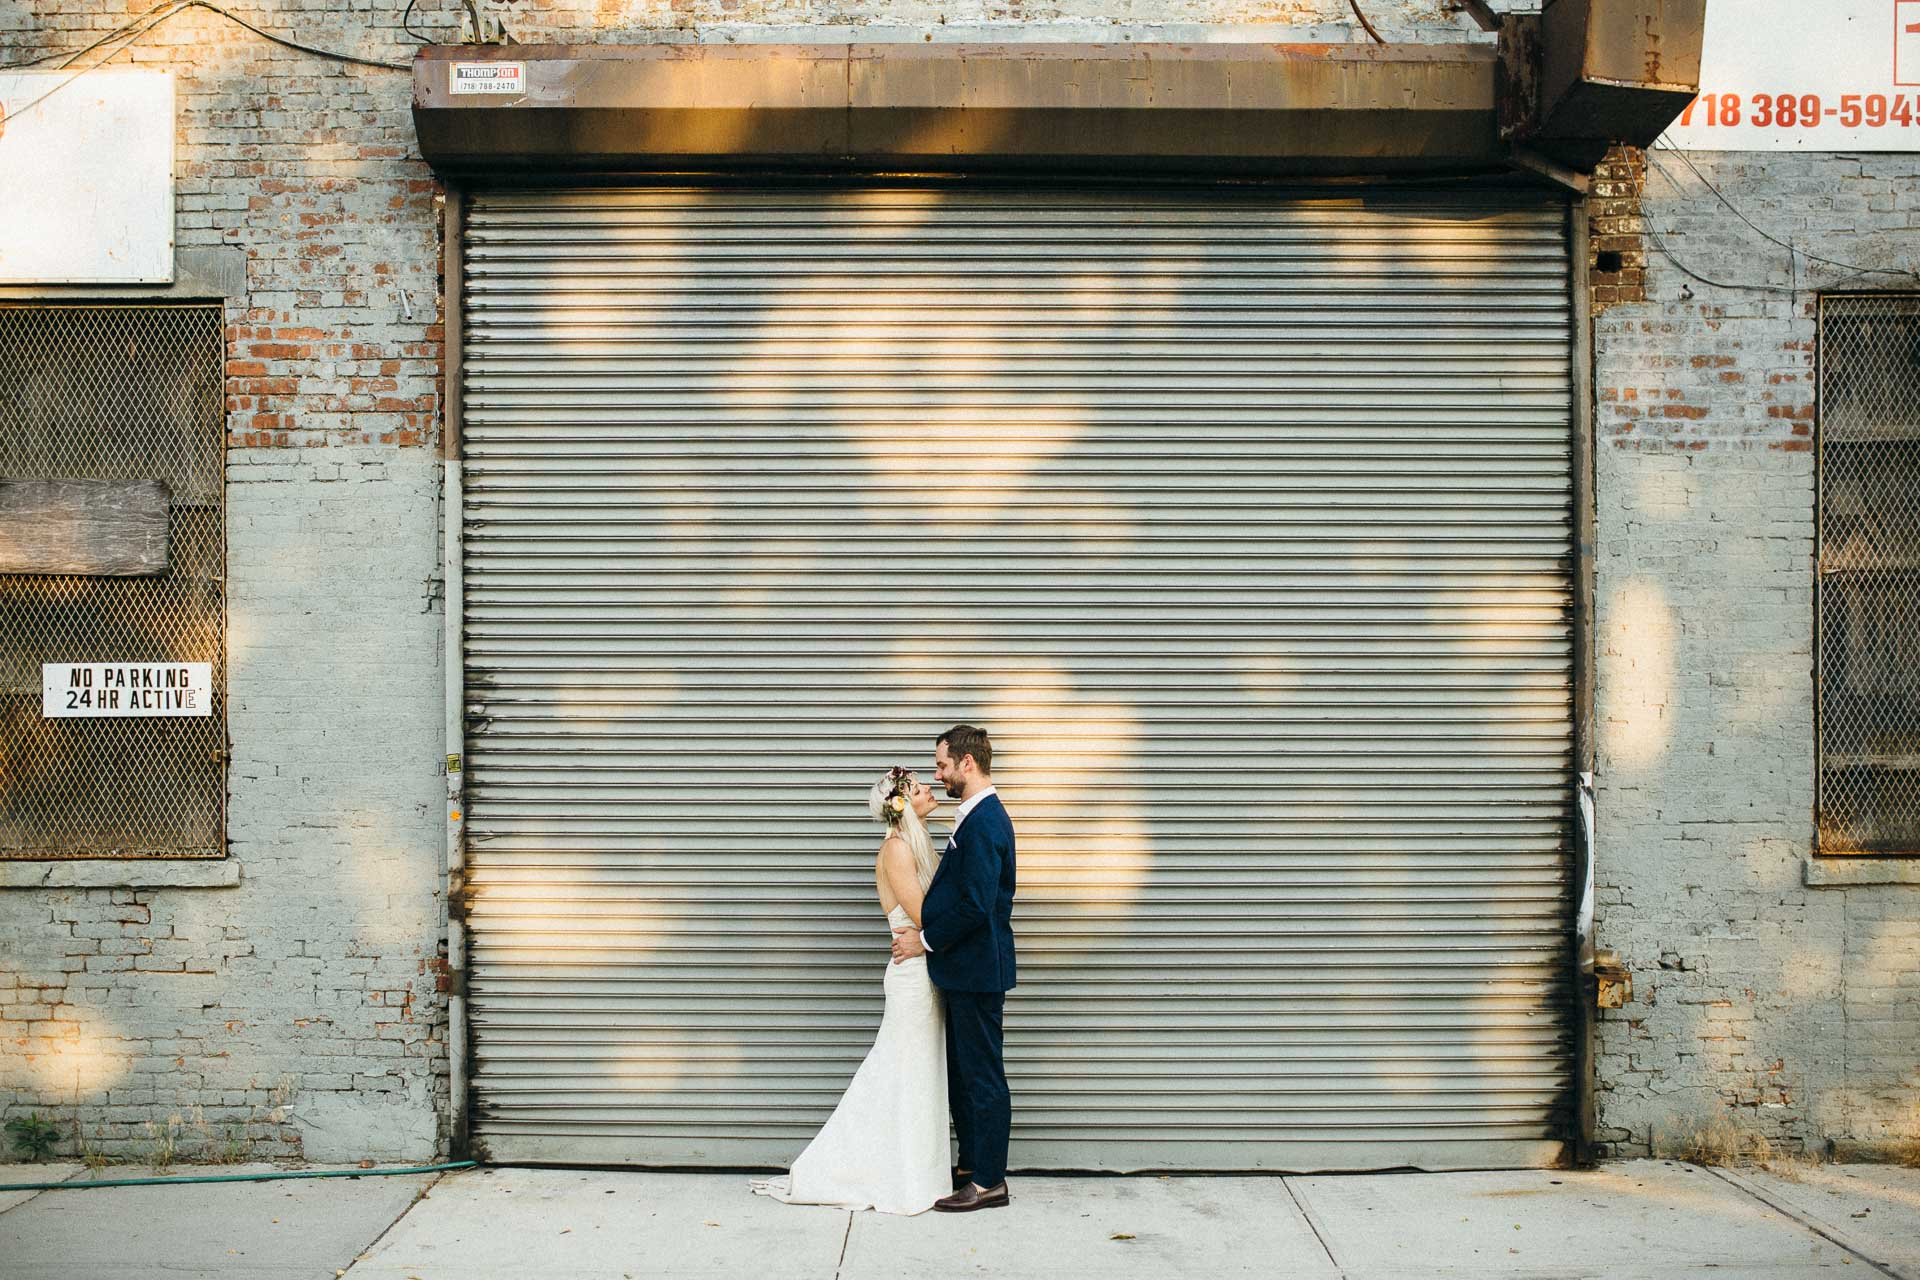 Maris & Brock's Wedding at The Glasserie, Greenpoint,Brooklyn, New York, USA